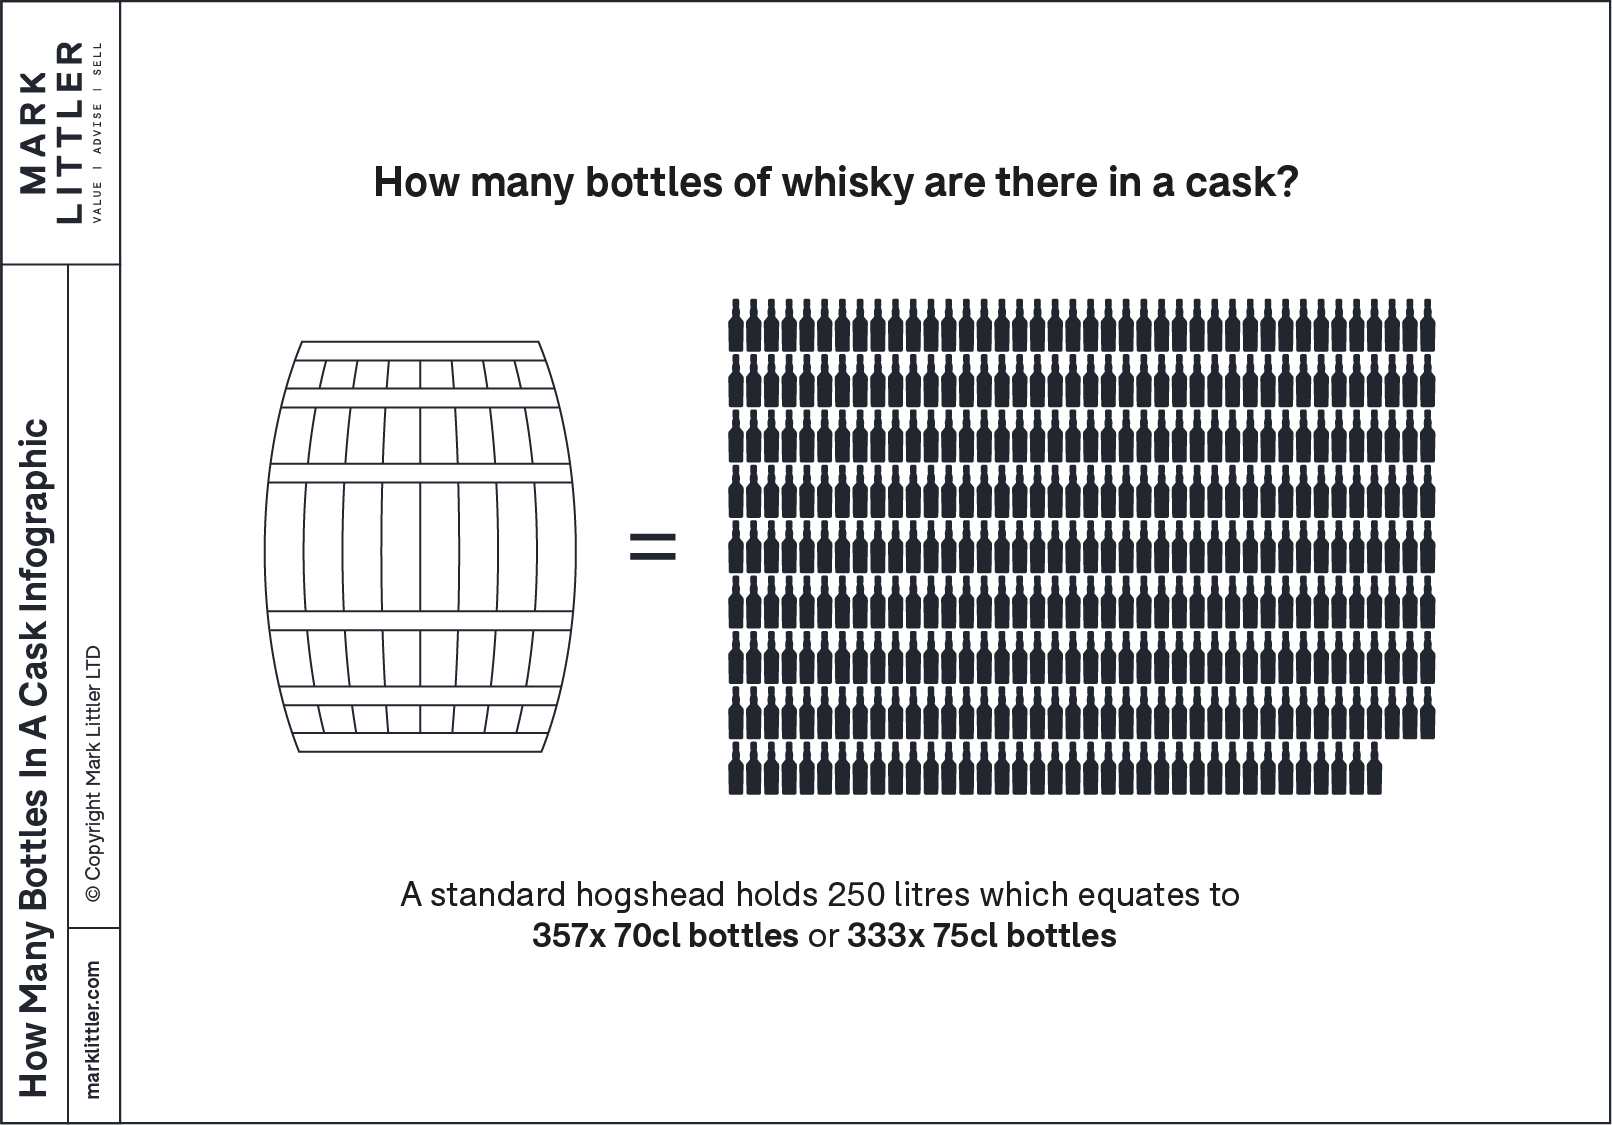 An infographic showing 357 70 centilitre bottles next to a hogshead